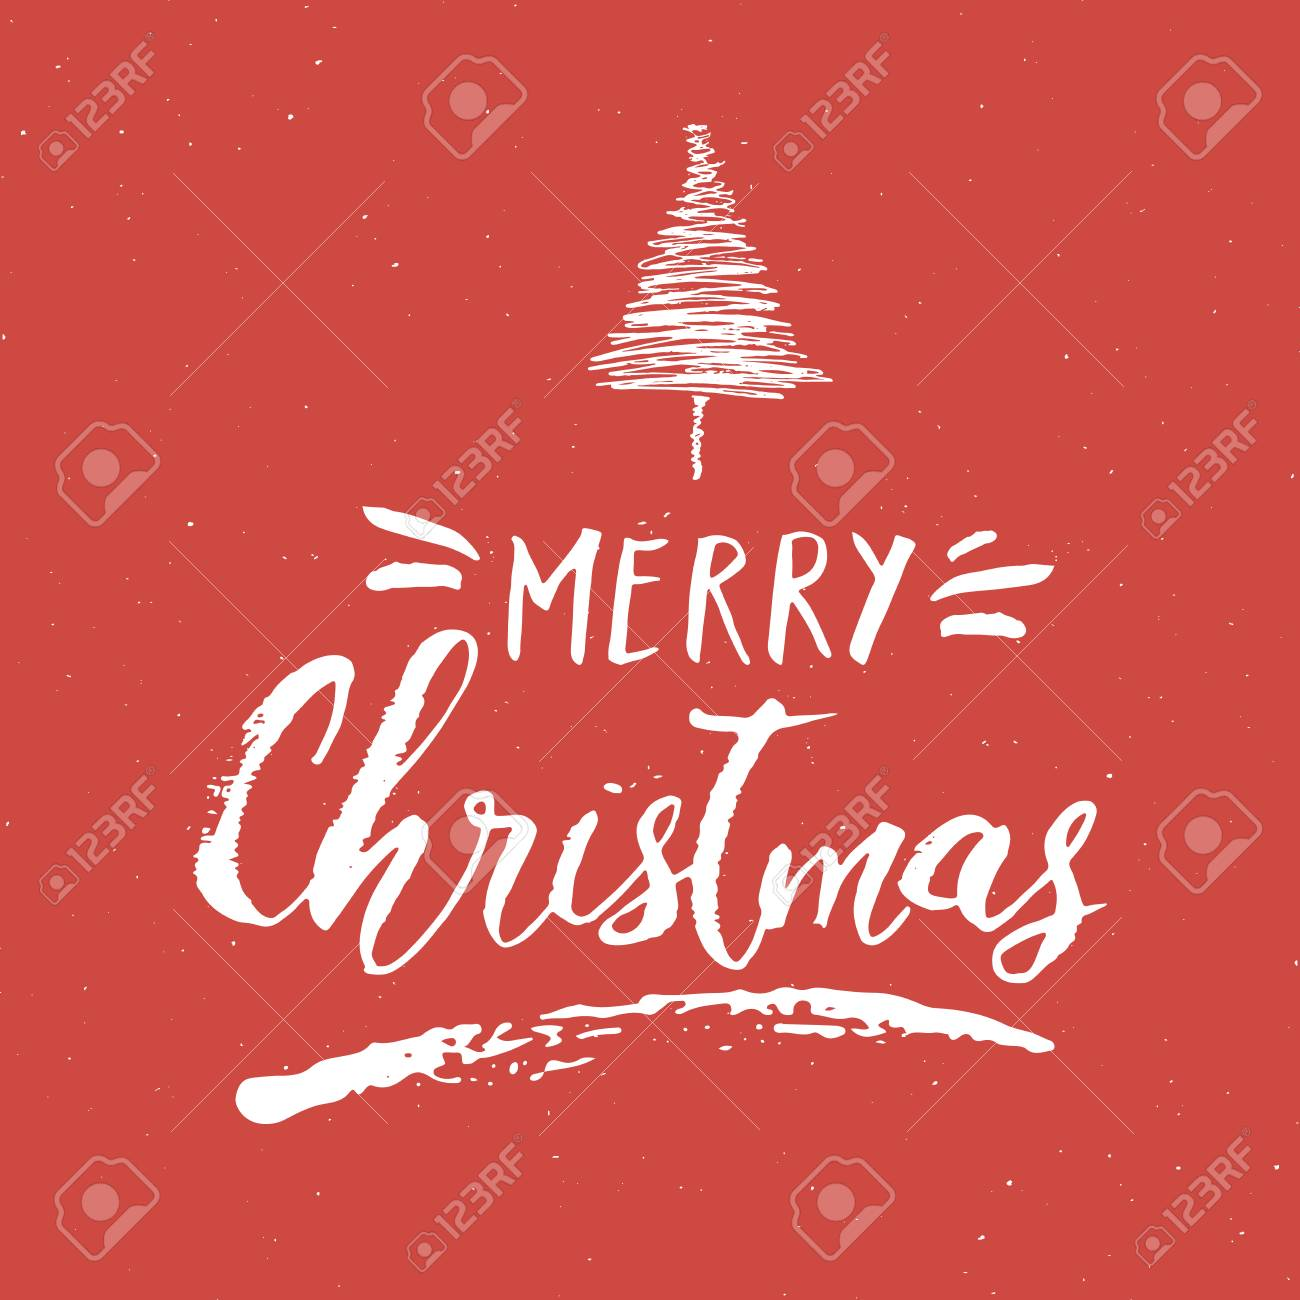 Merry Christmas Calligraphic Lettering Typographic Greetings